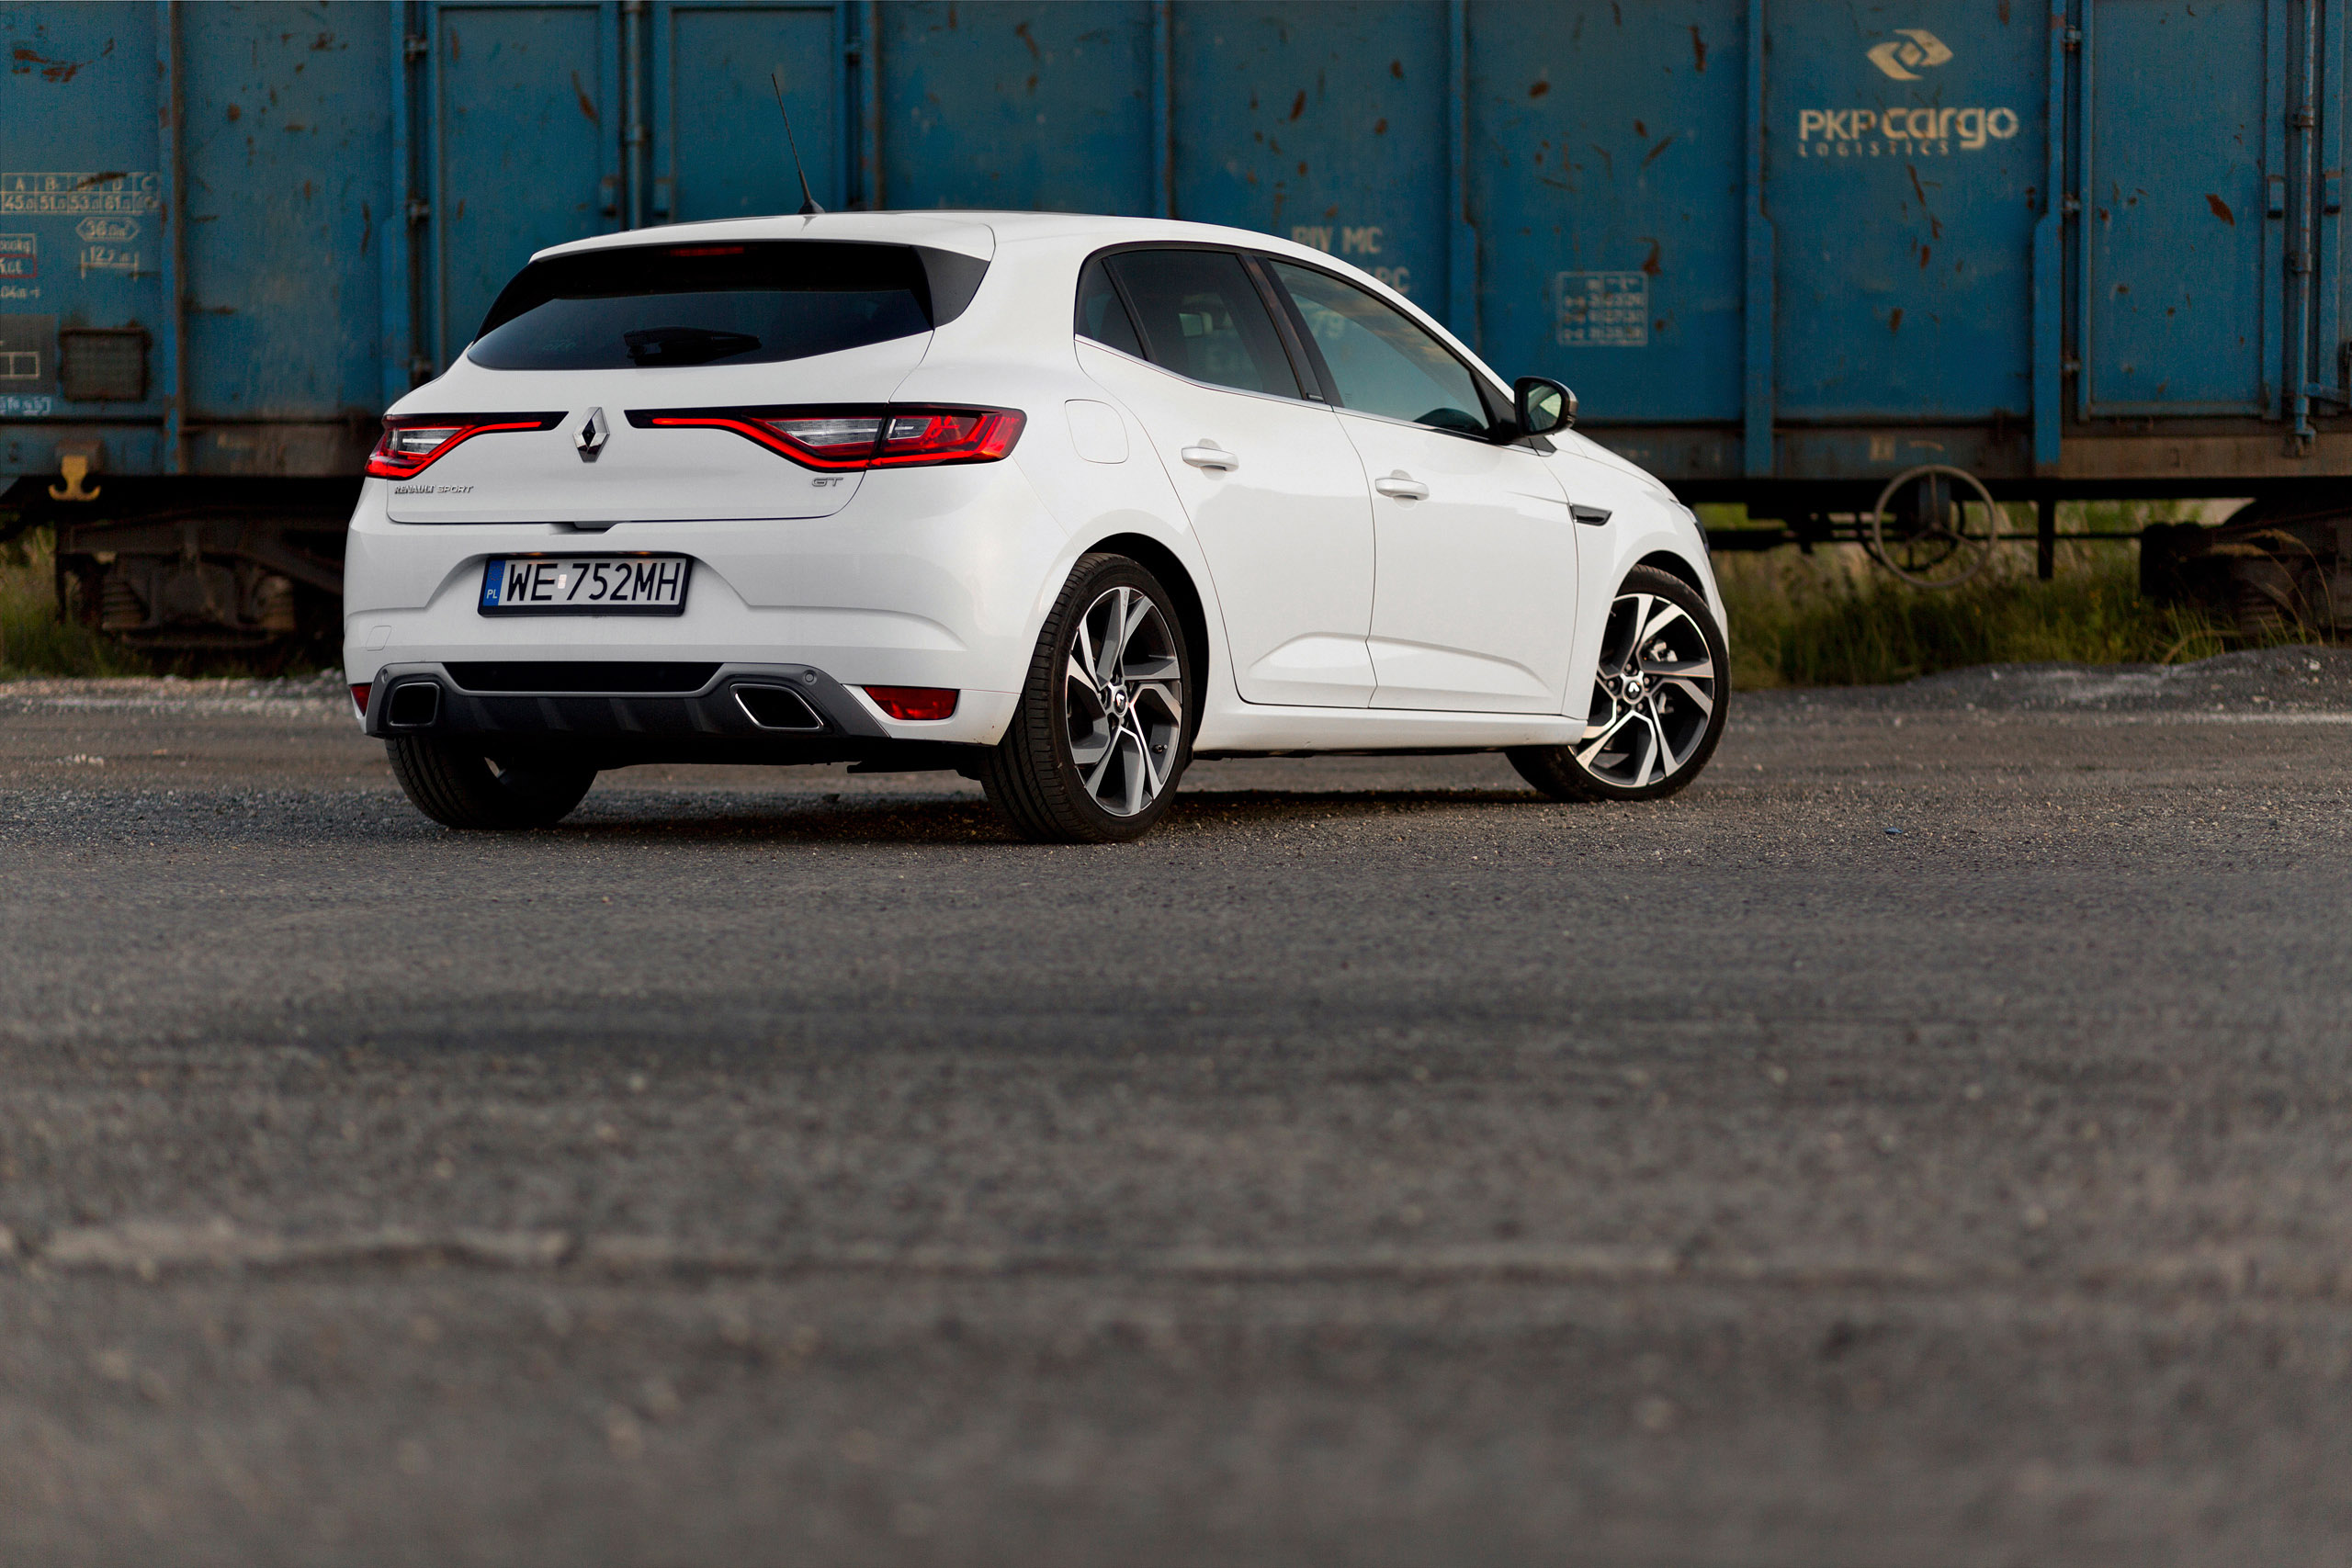 Renault Megane Gt 1 6 Tce Edc 205km Test Project Automotive